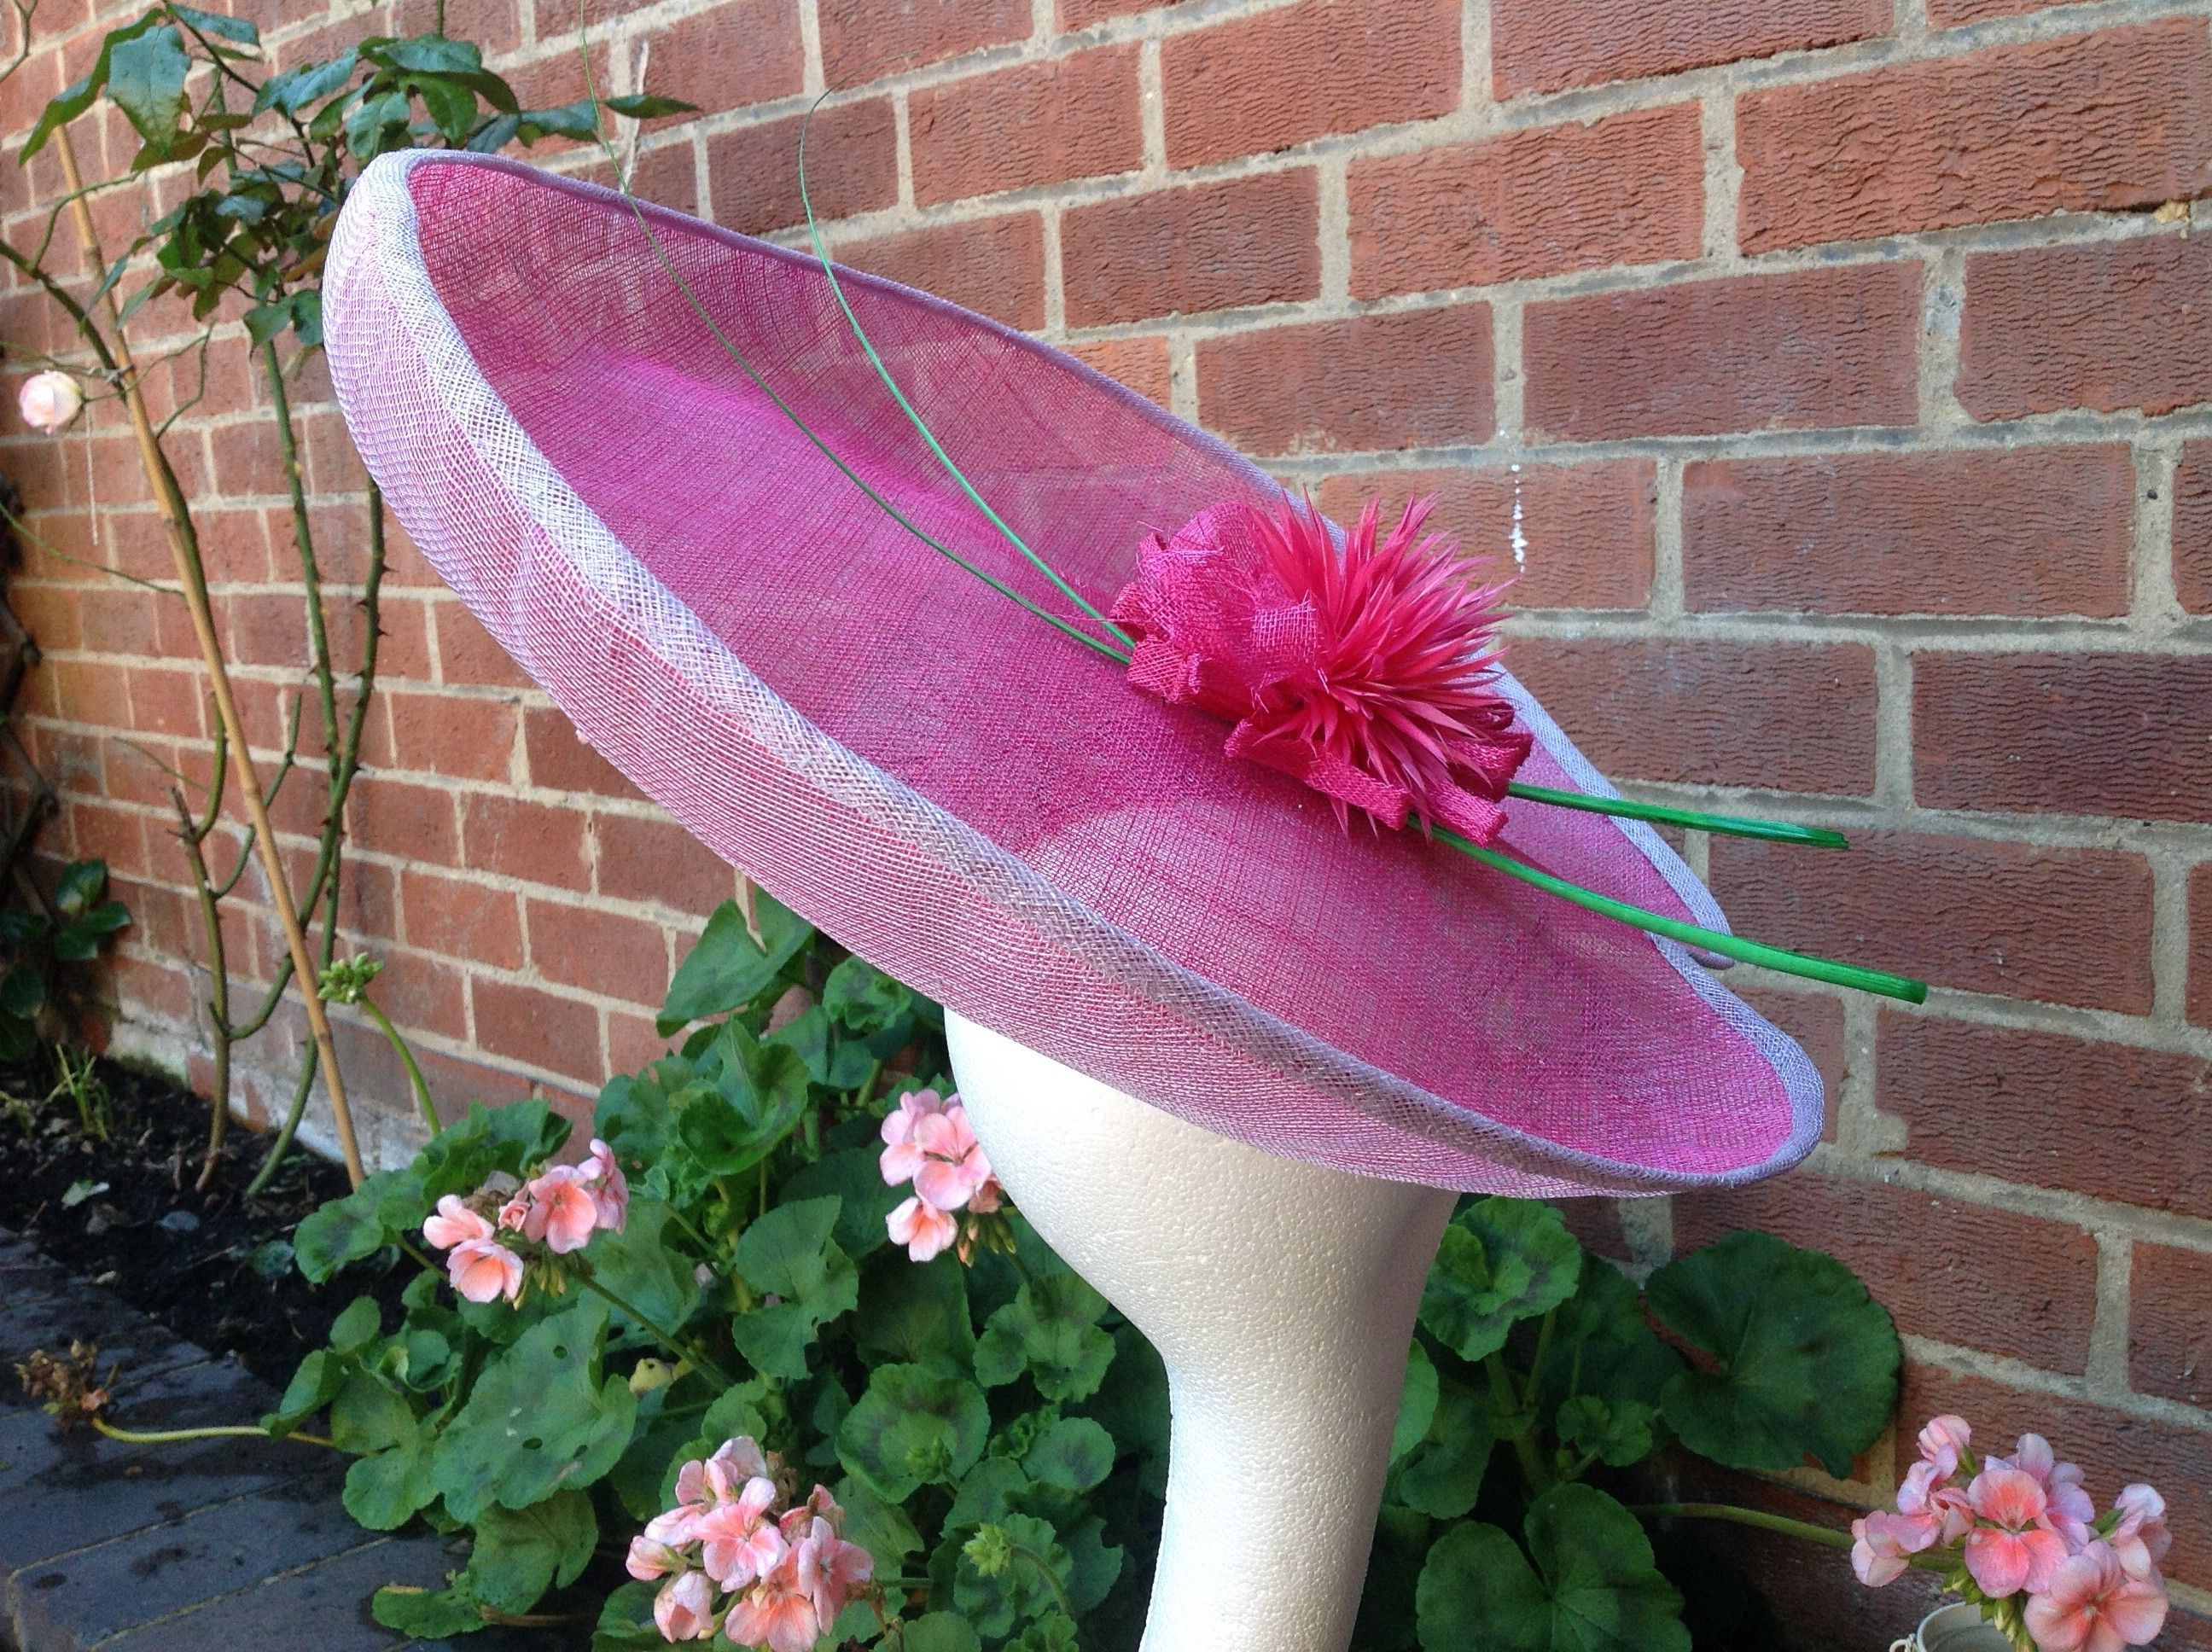 Allium1. Large pink saucer inspired by allium flowers | Tocados 2 ...